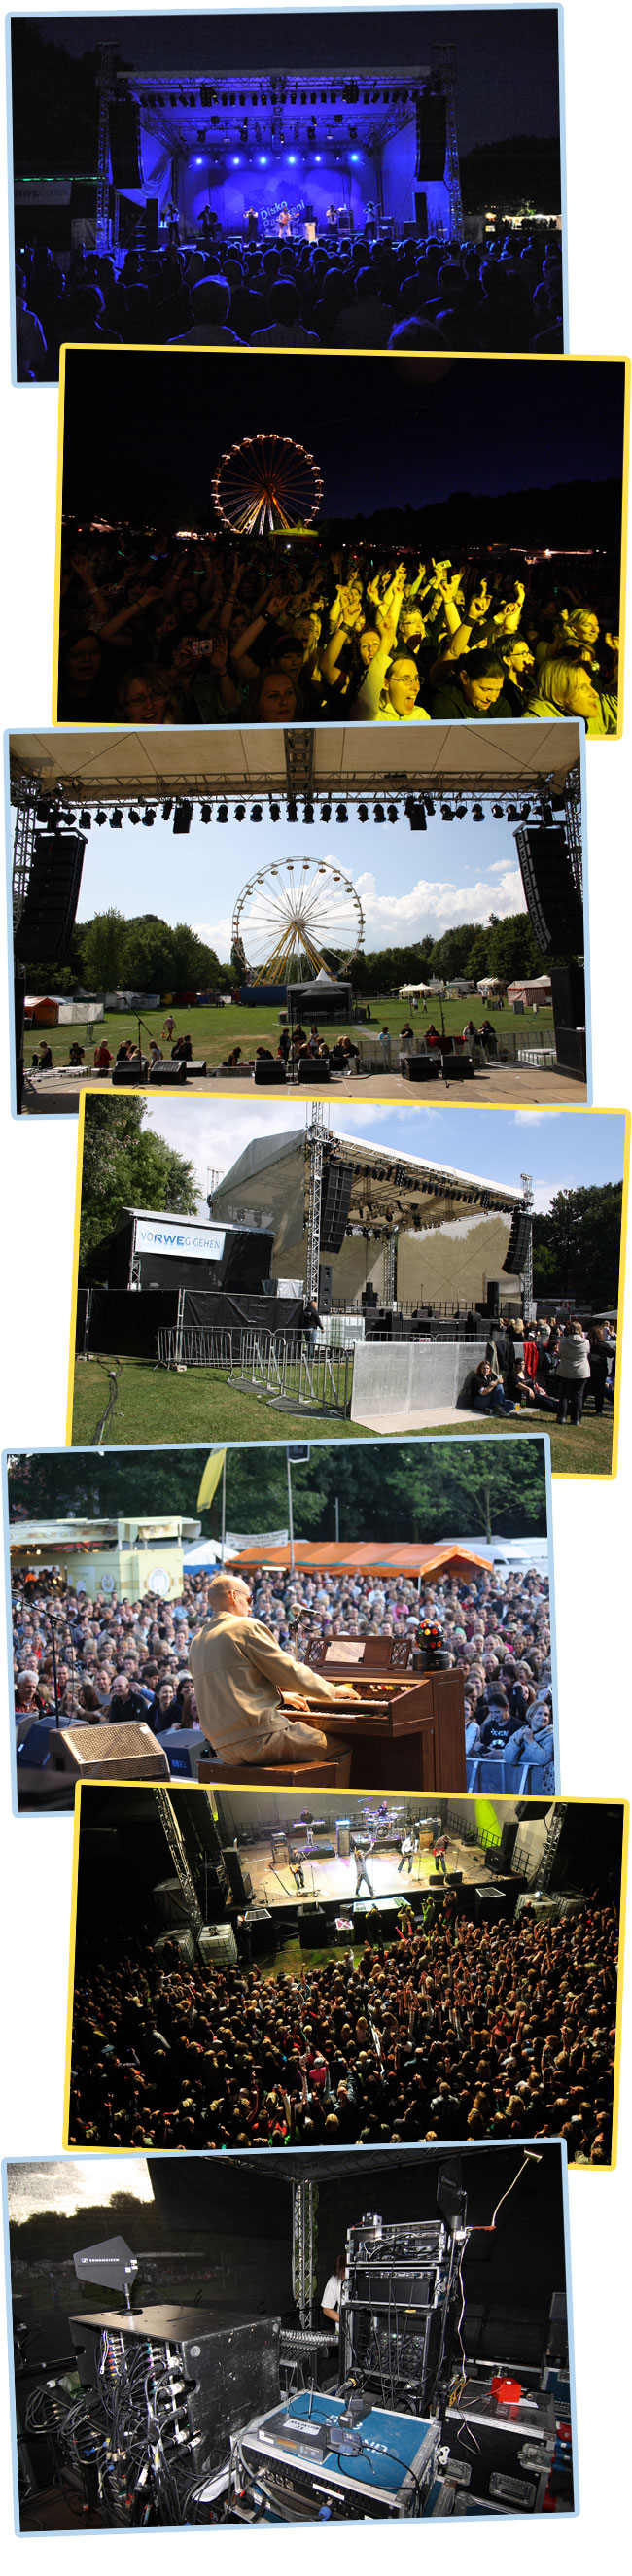 Parkfest: Open Air Bühne